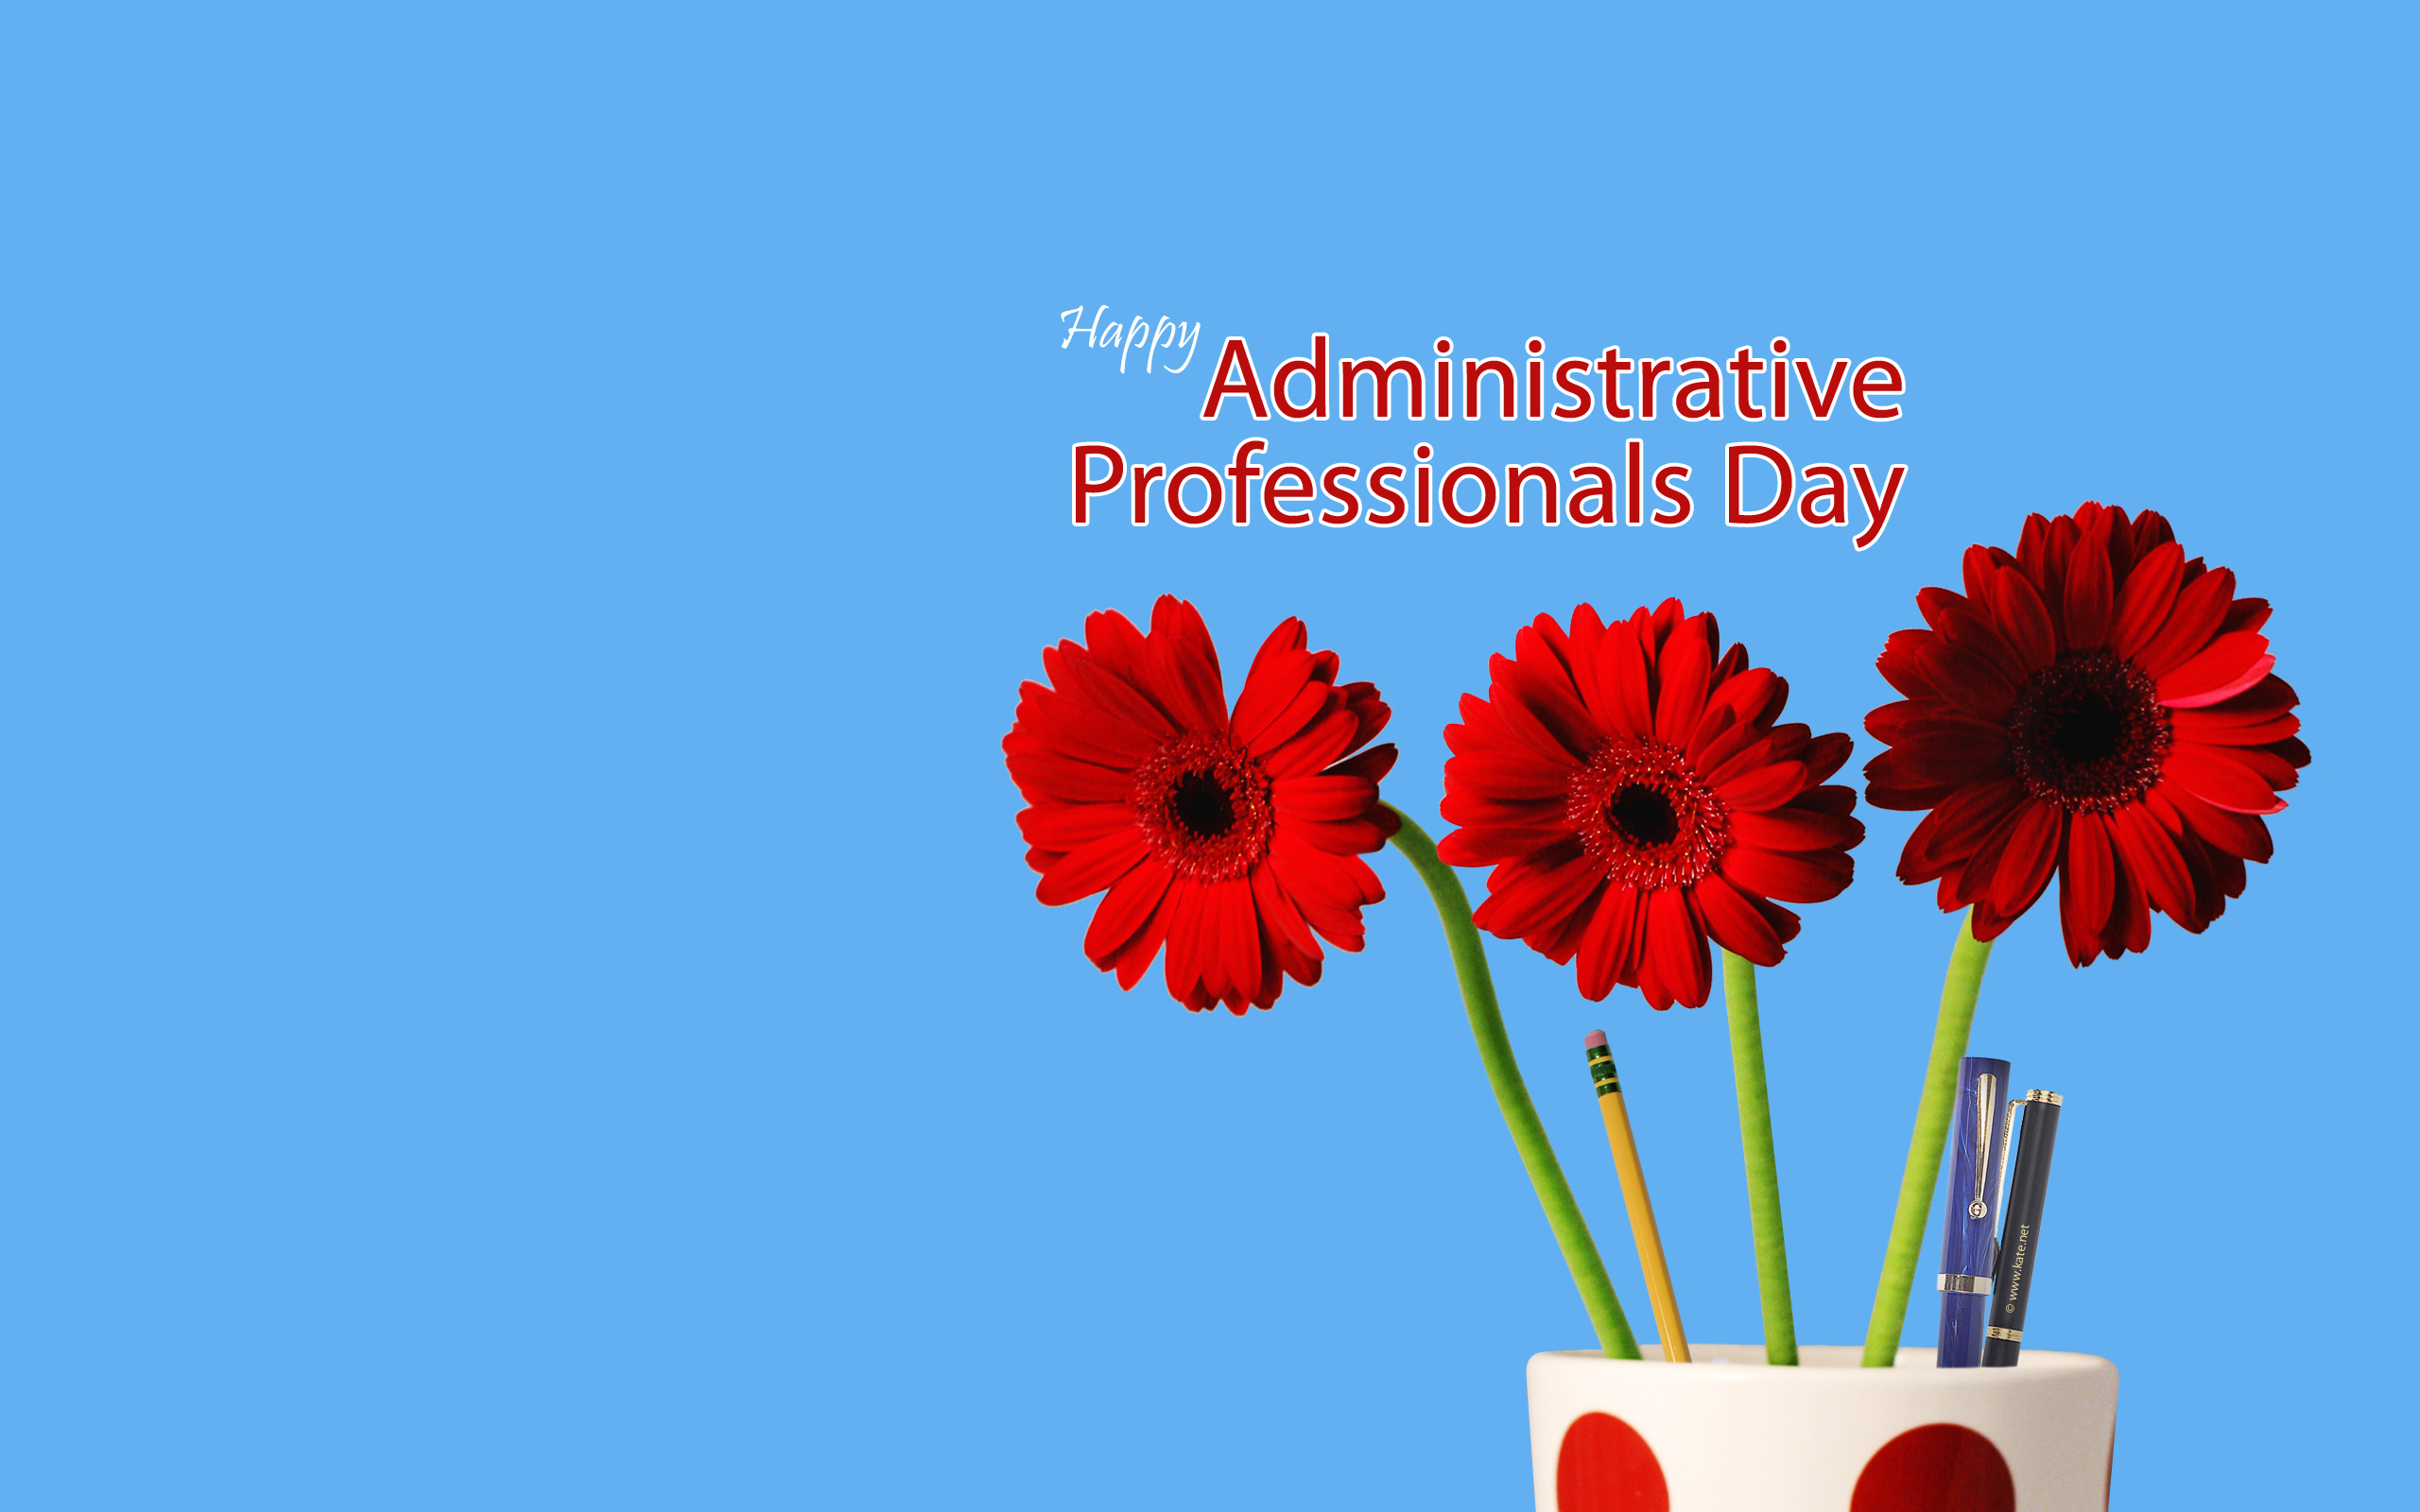 administrators professional day